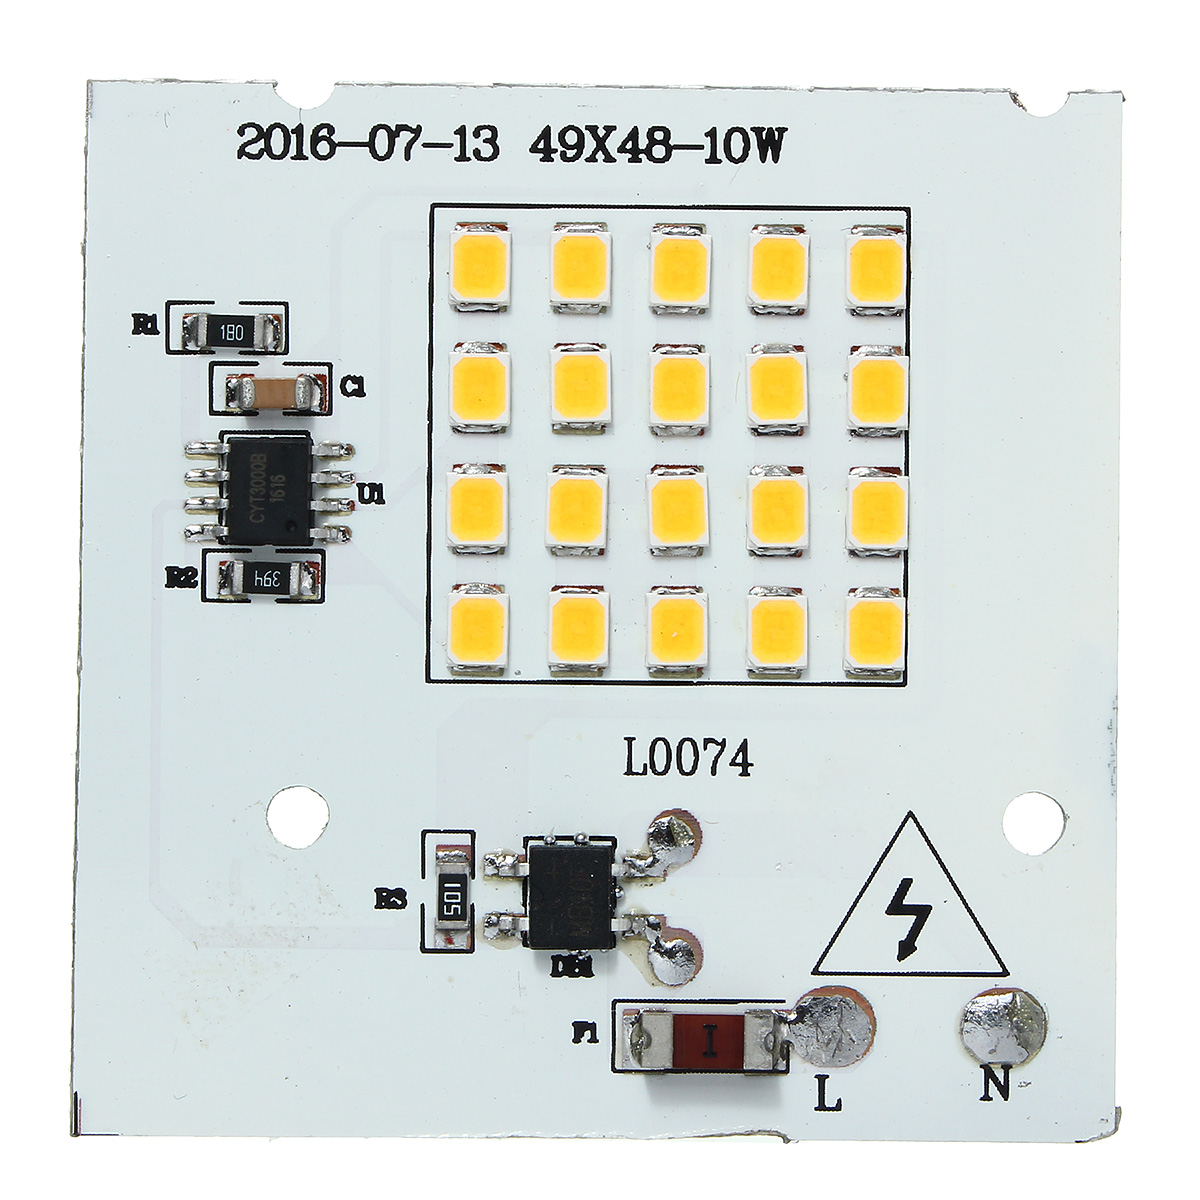 10w Smd2835 Outdooors Smart Ic Led Bulbs Cob Chip Bead Flood Light Wiring Diagram Lamp 220v